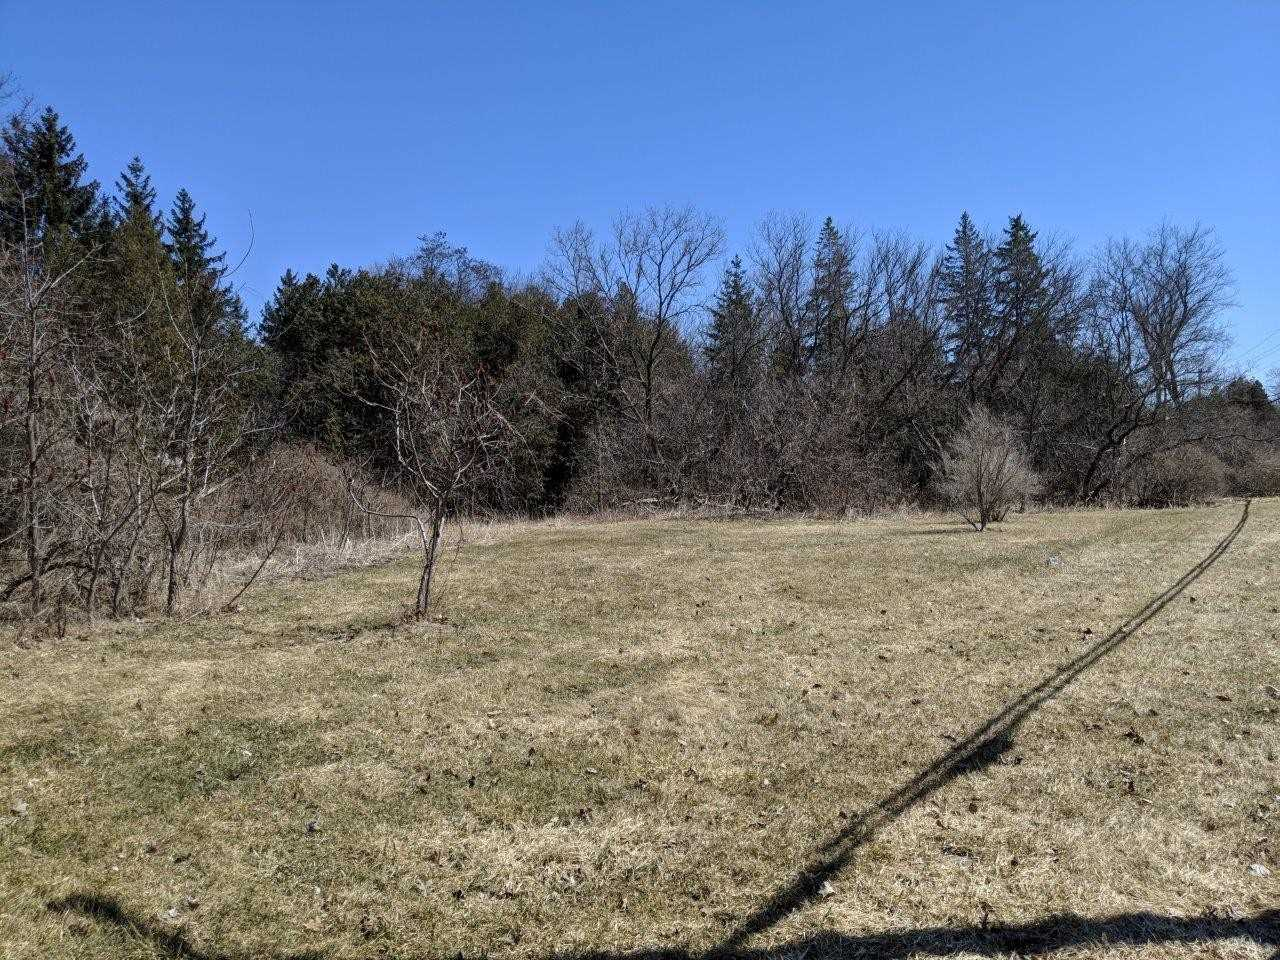 Beautiful, In-Town Riverfront Residential Lot. Lot Size Is Approximately 0.61 Acres. Residential Zoning. Walking Distance To Most Amenities Including Bank, Grocery, Post Office, Doctor, Pharmacy, Lcbo. Approximately 380' Of Riverfront. Excellent Opportunity For Builders/Investors. Address Approximate.